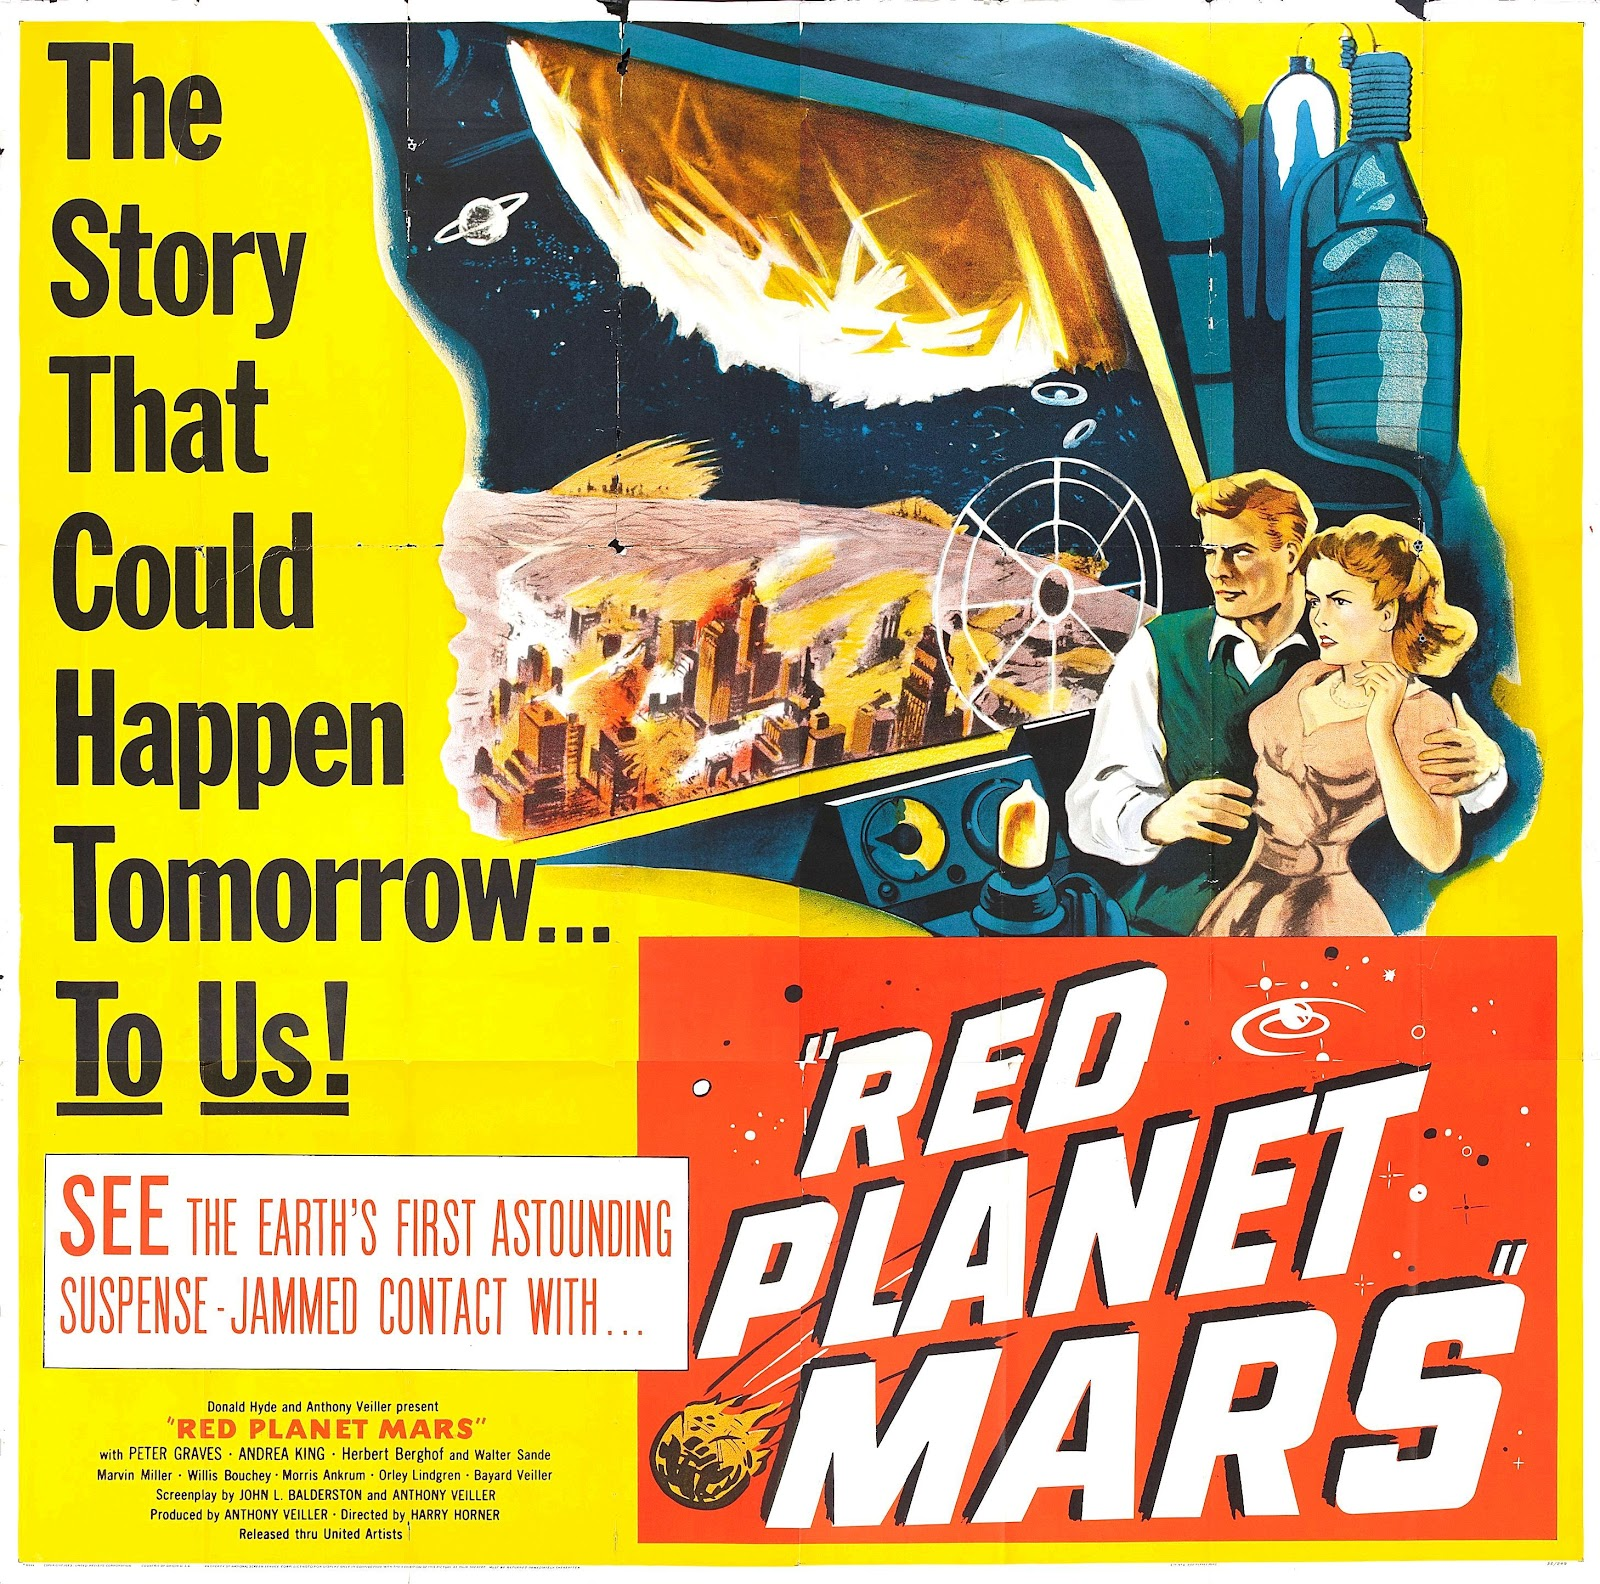 mars red planet movie monsters -#main